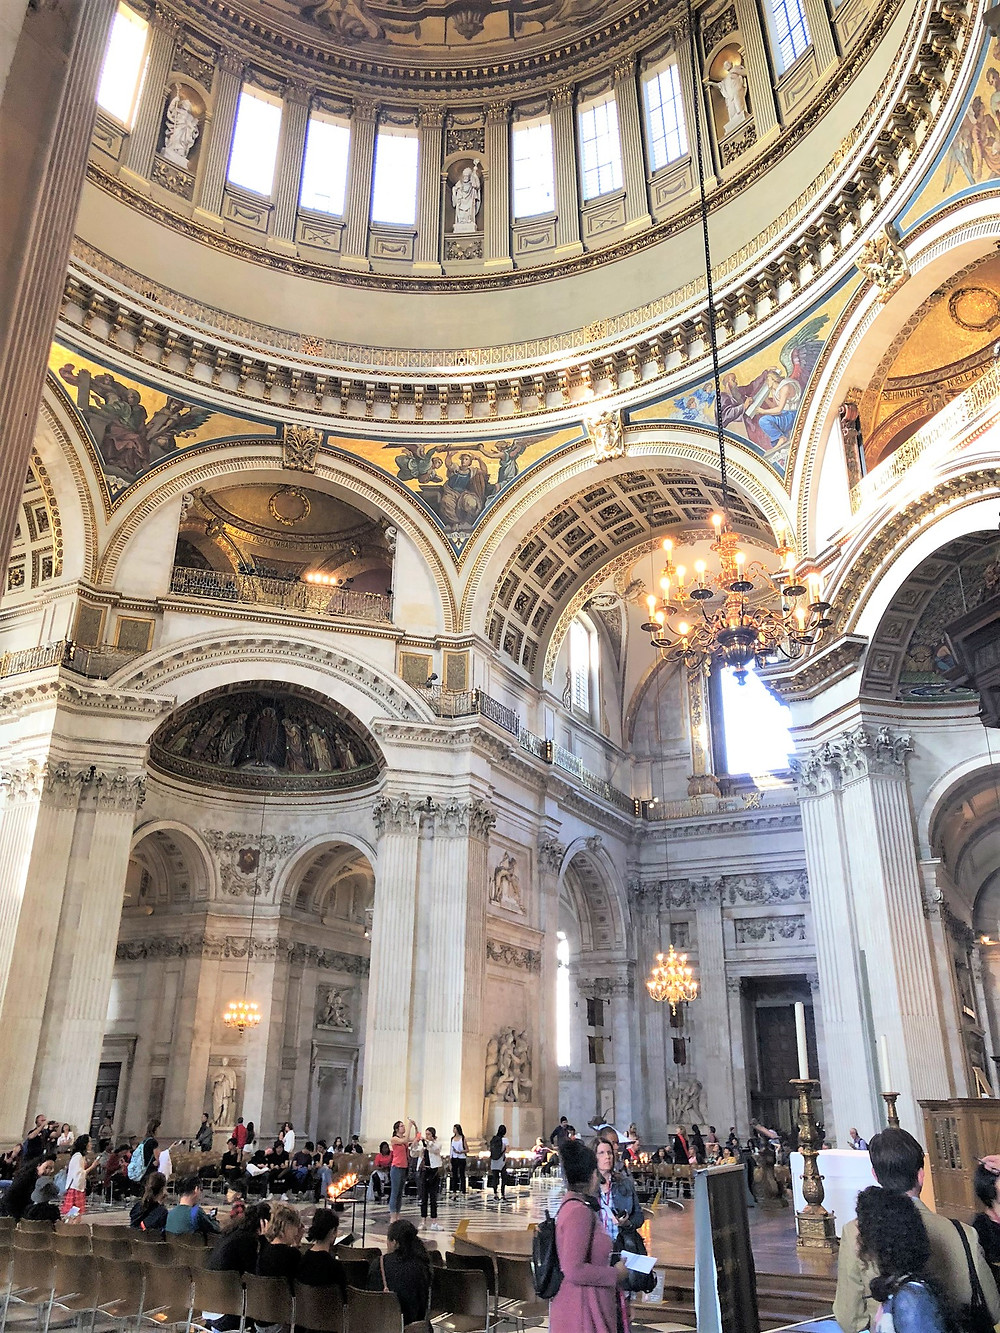 The magnificent dome of St Paul's Cathedral rises to a height of 214 feet above the main floor. The dome's weight is estimated at 67,000 pounds)